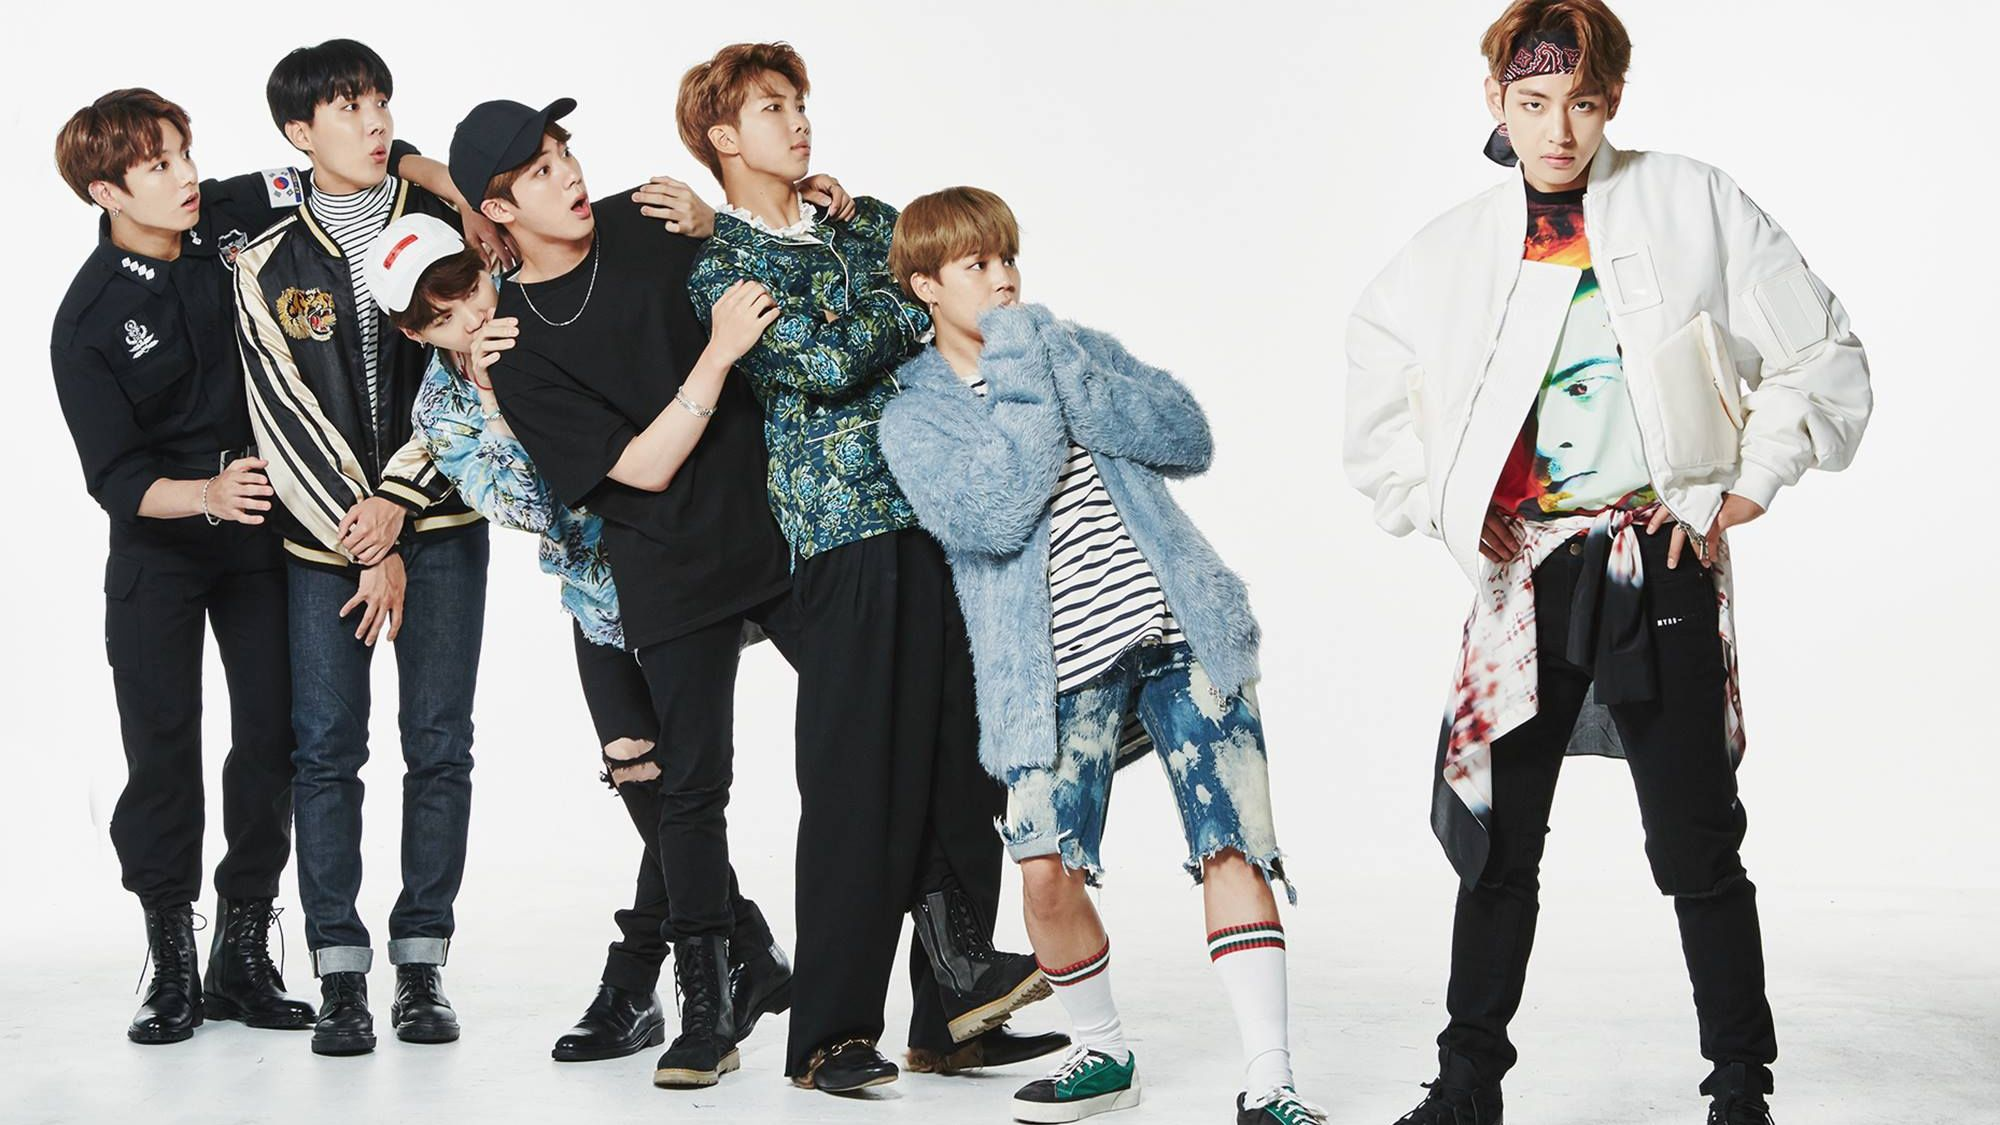 Bts Computer Wallpapers Top Free Bts Computer Backgrounds